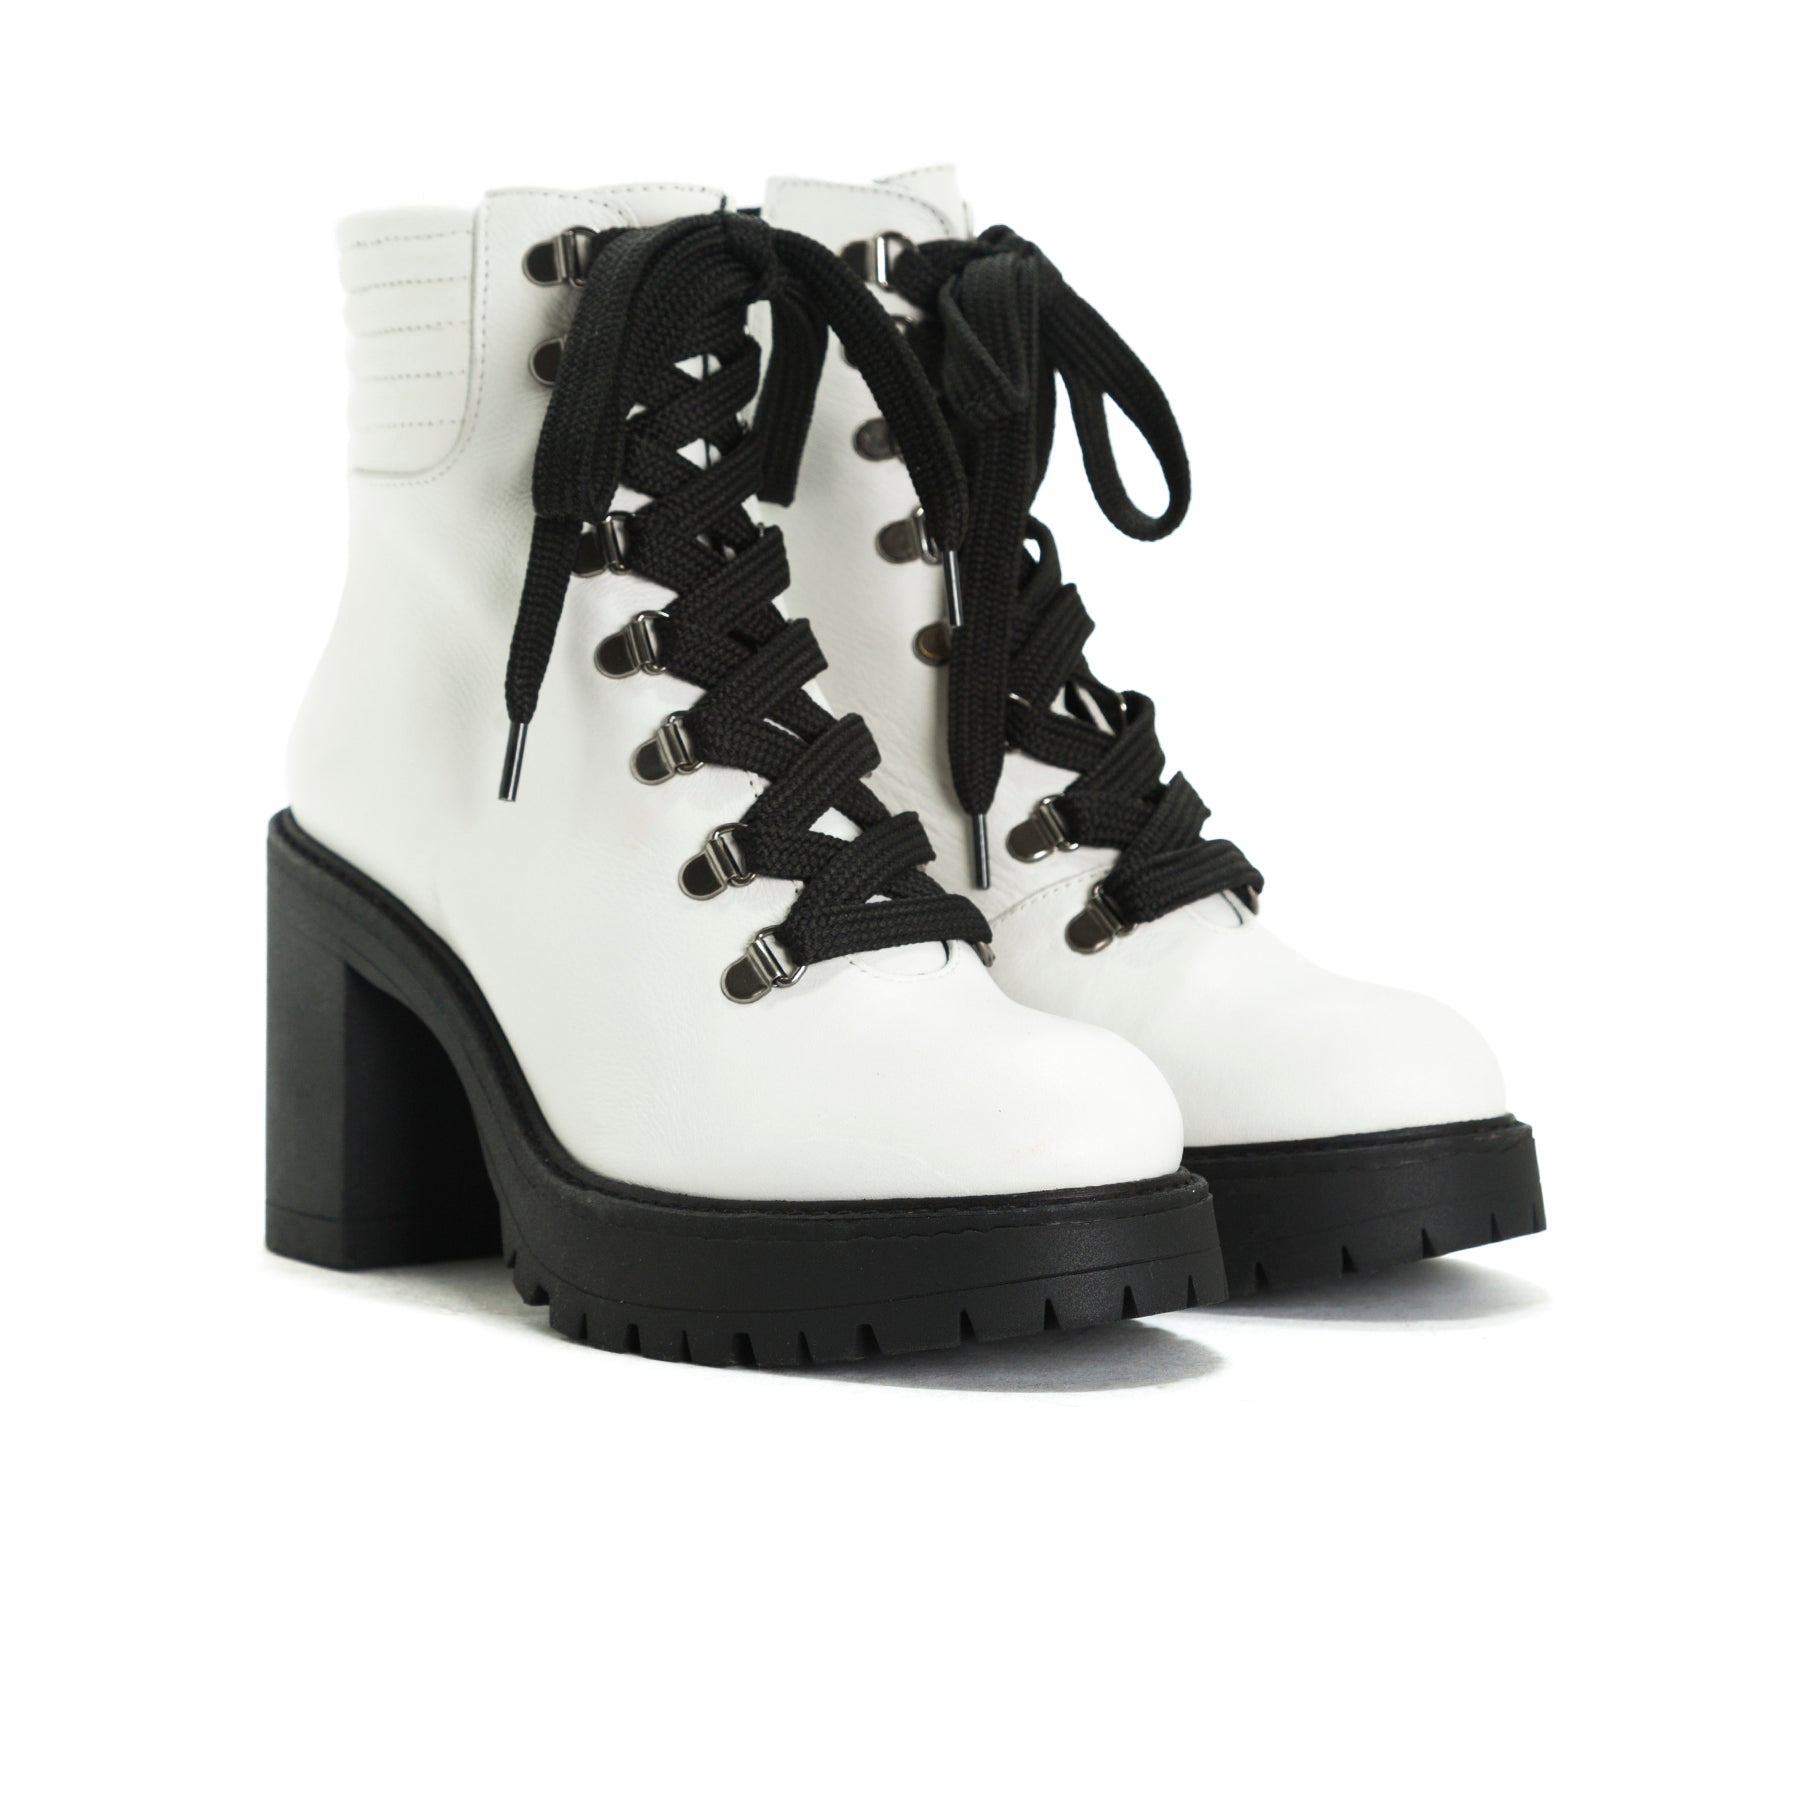 Sickla White Leather Platforms